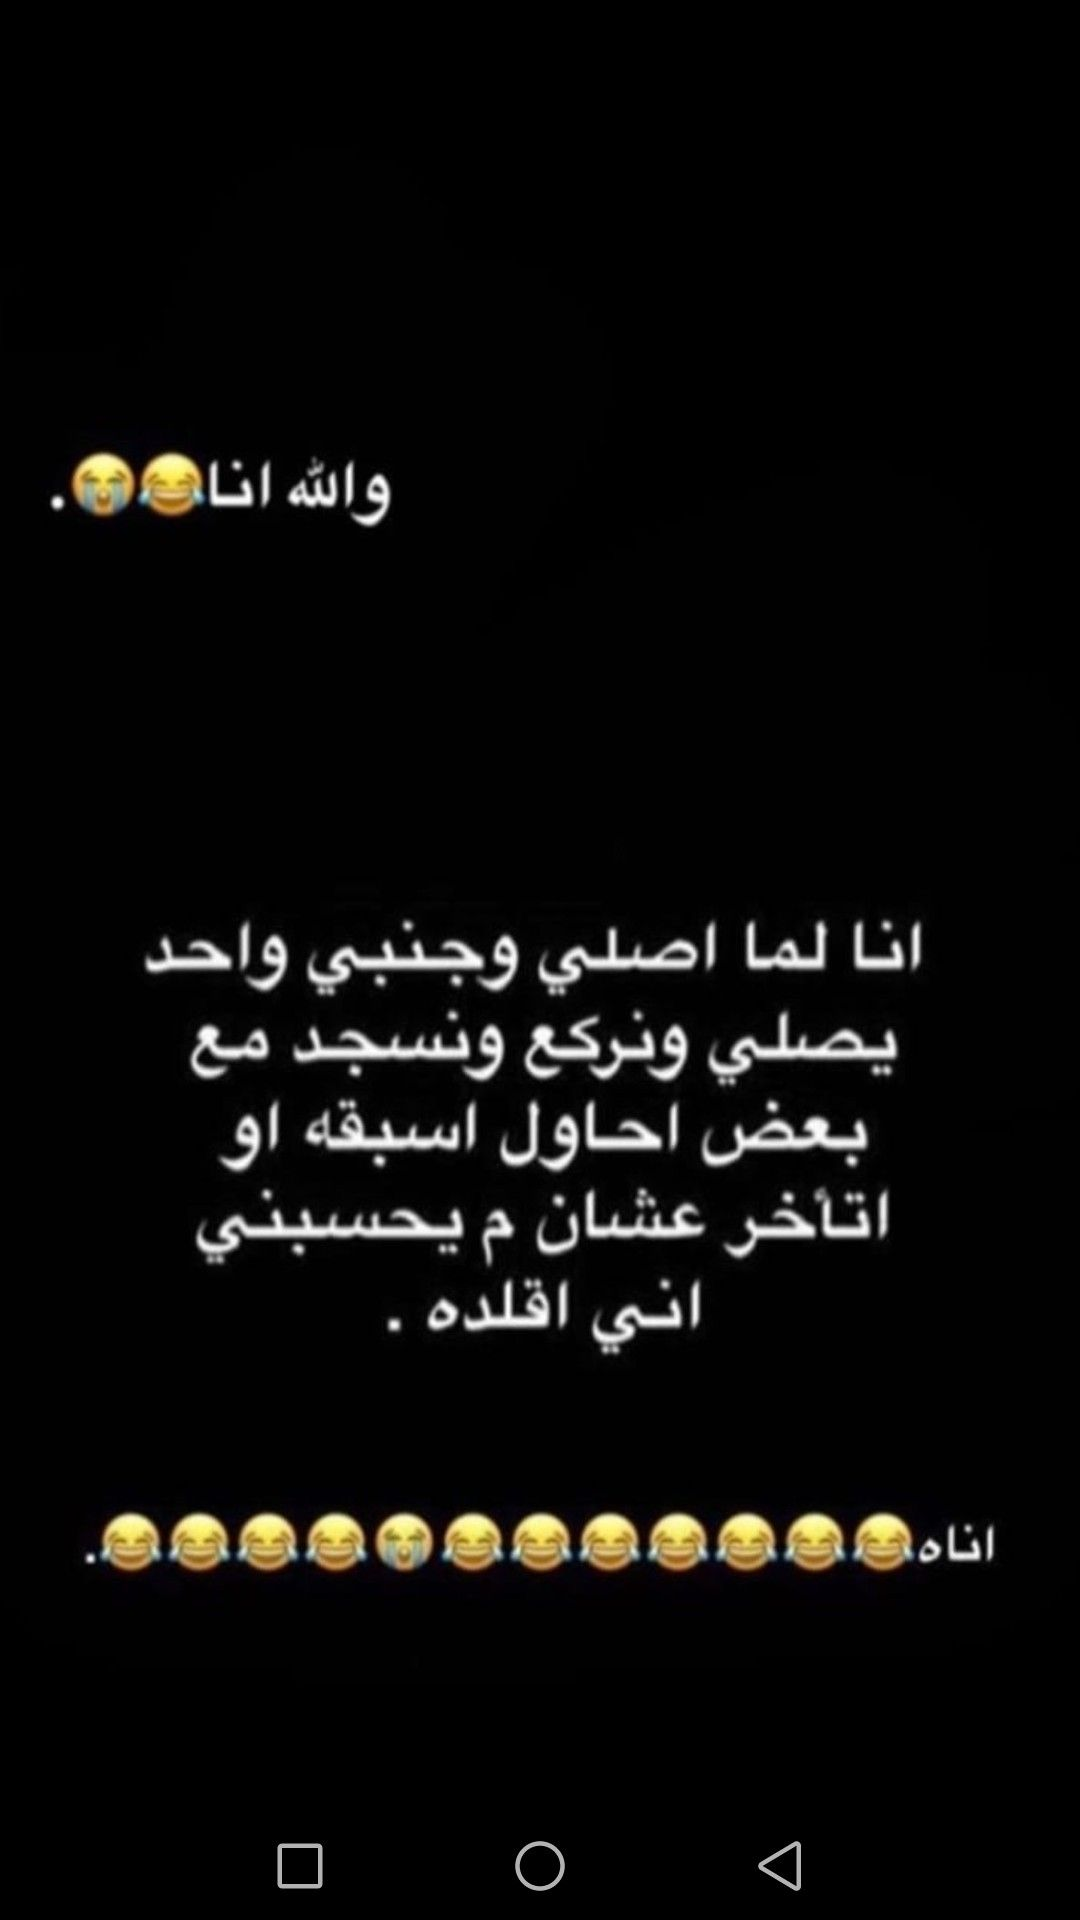 Pin By Sarah On استهبال Funny Phrases Words Quotes Funny Arabic Quotes